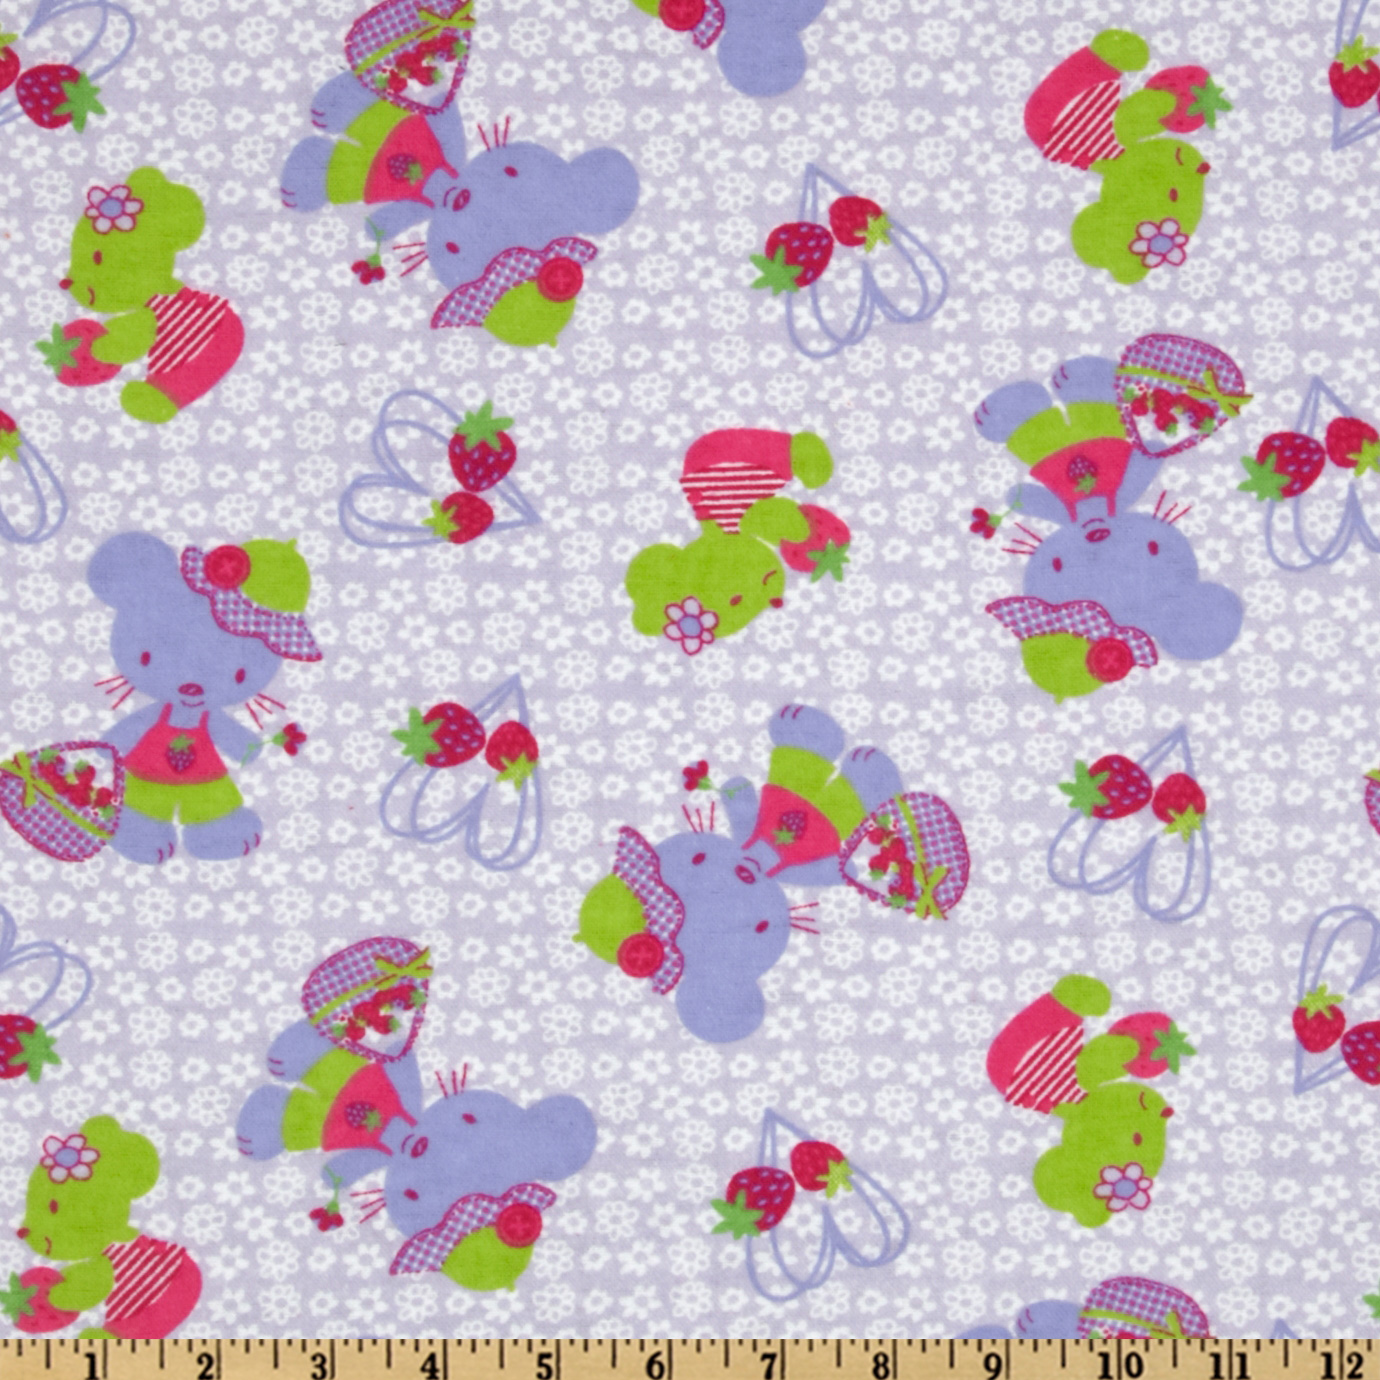 Camelot Flannel Kitties & Berries Purple Fabric